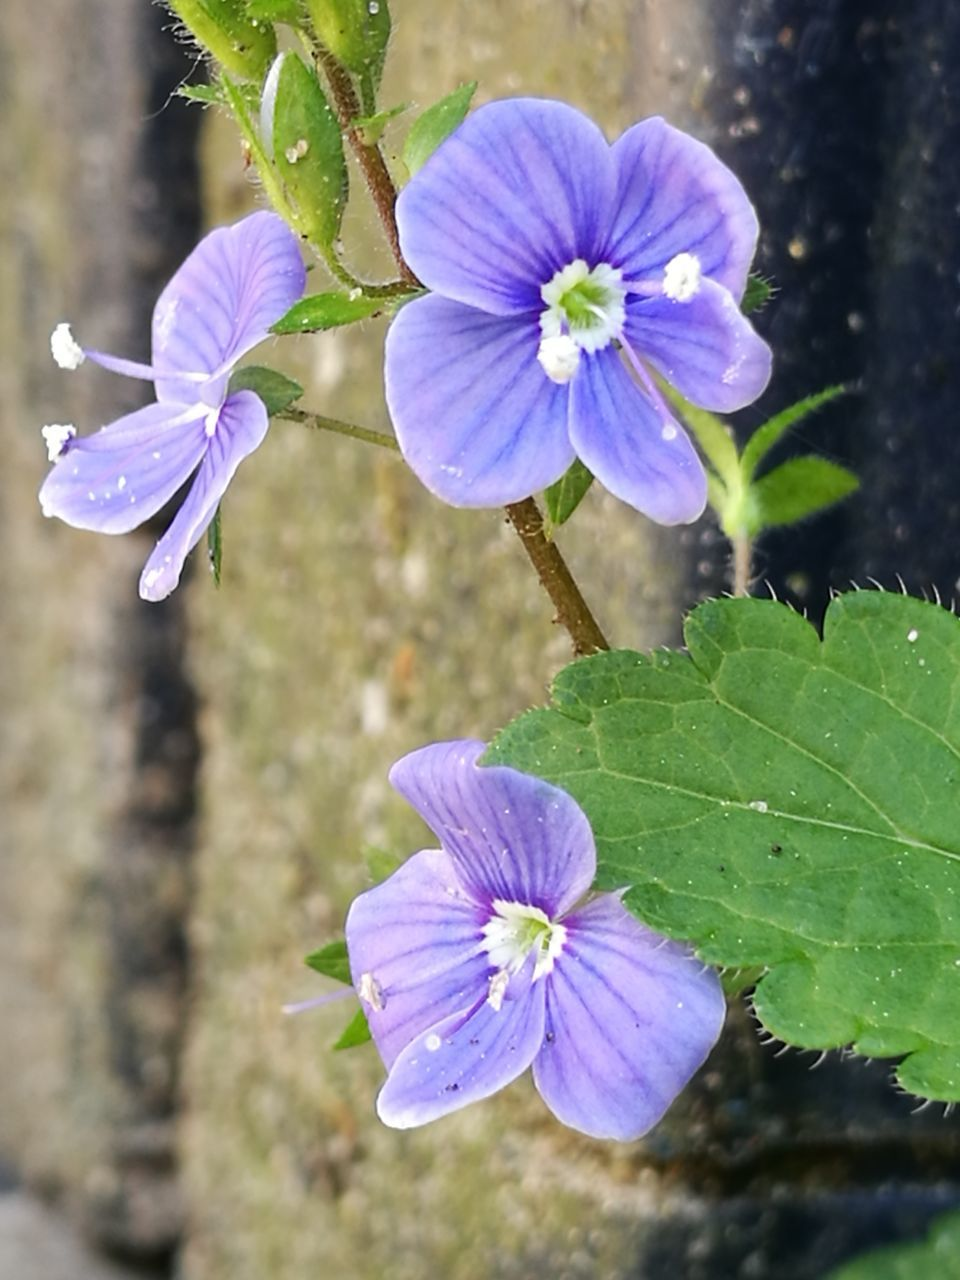 flower, growth, nature, plant, beauty in nature, purple, blooming, petal, fragility, freshness, no people, close-up, outdoors, flower head, day